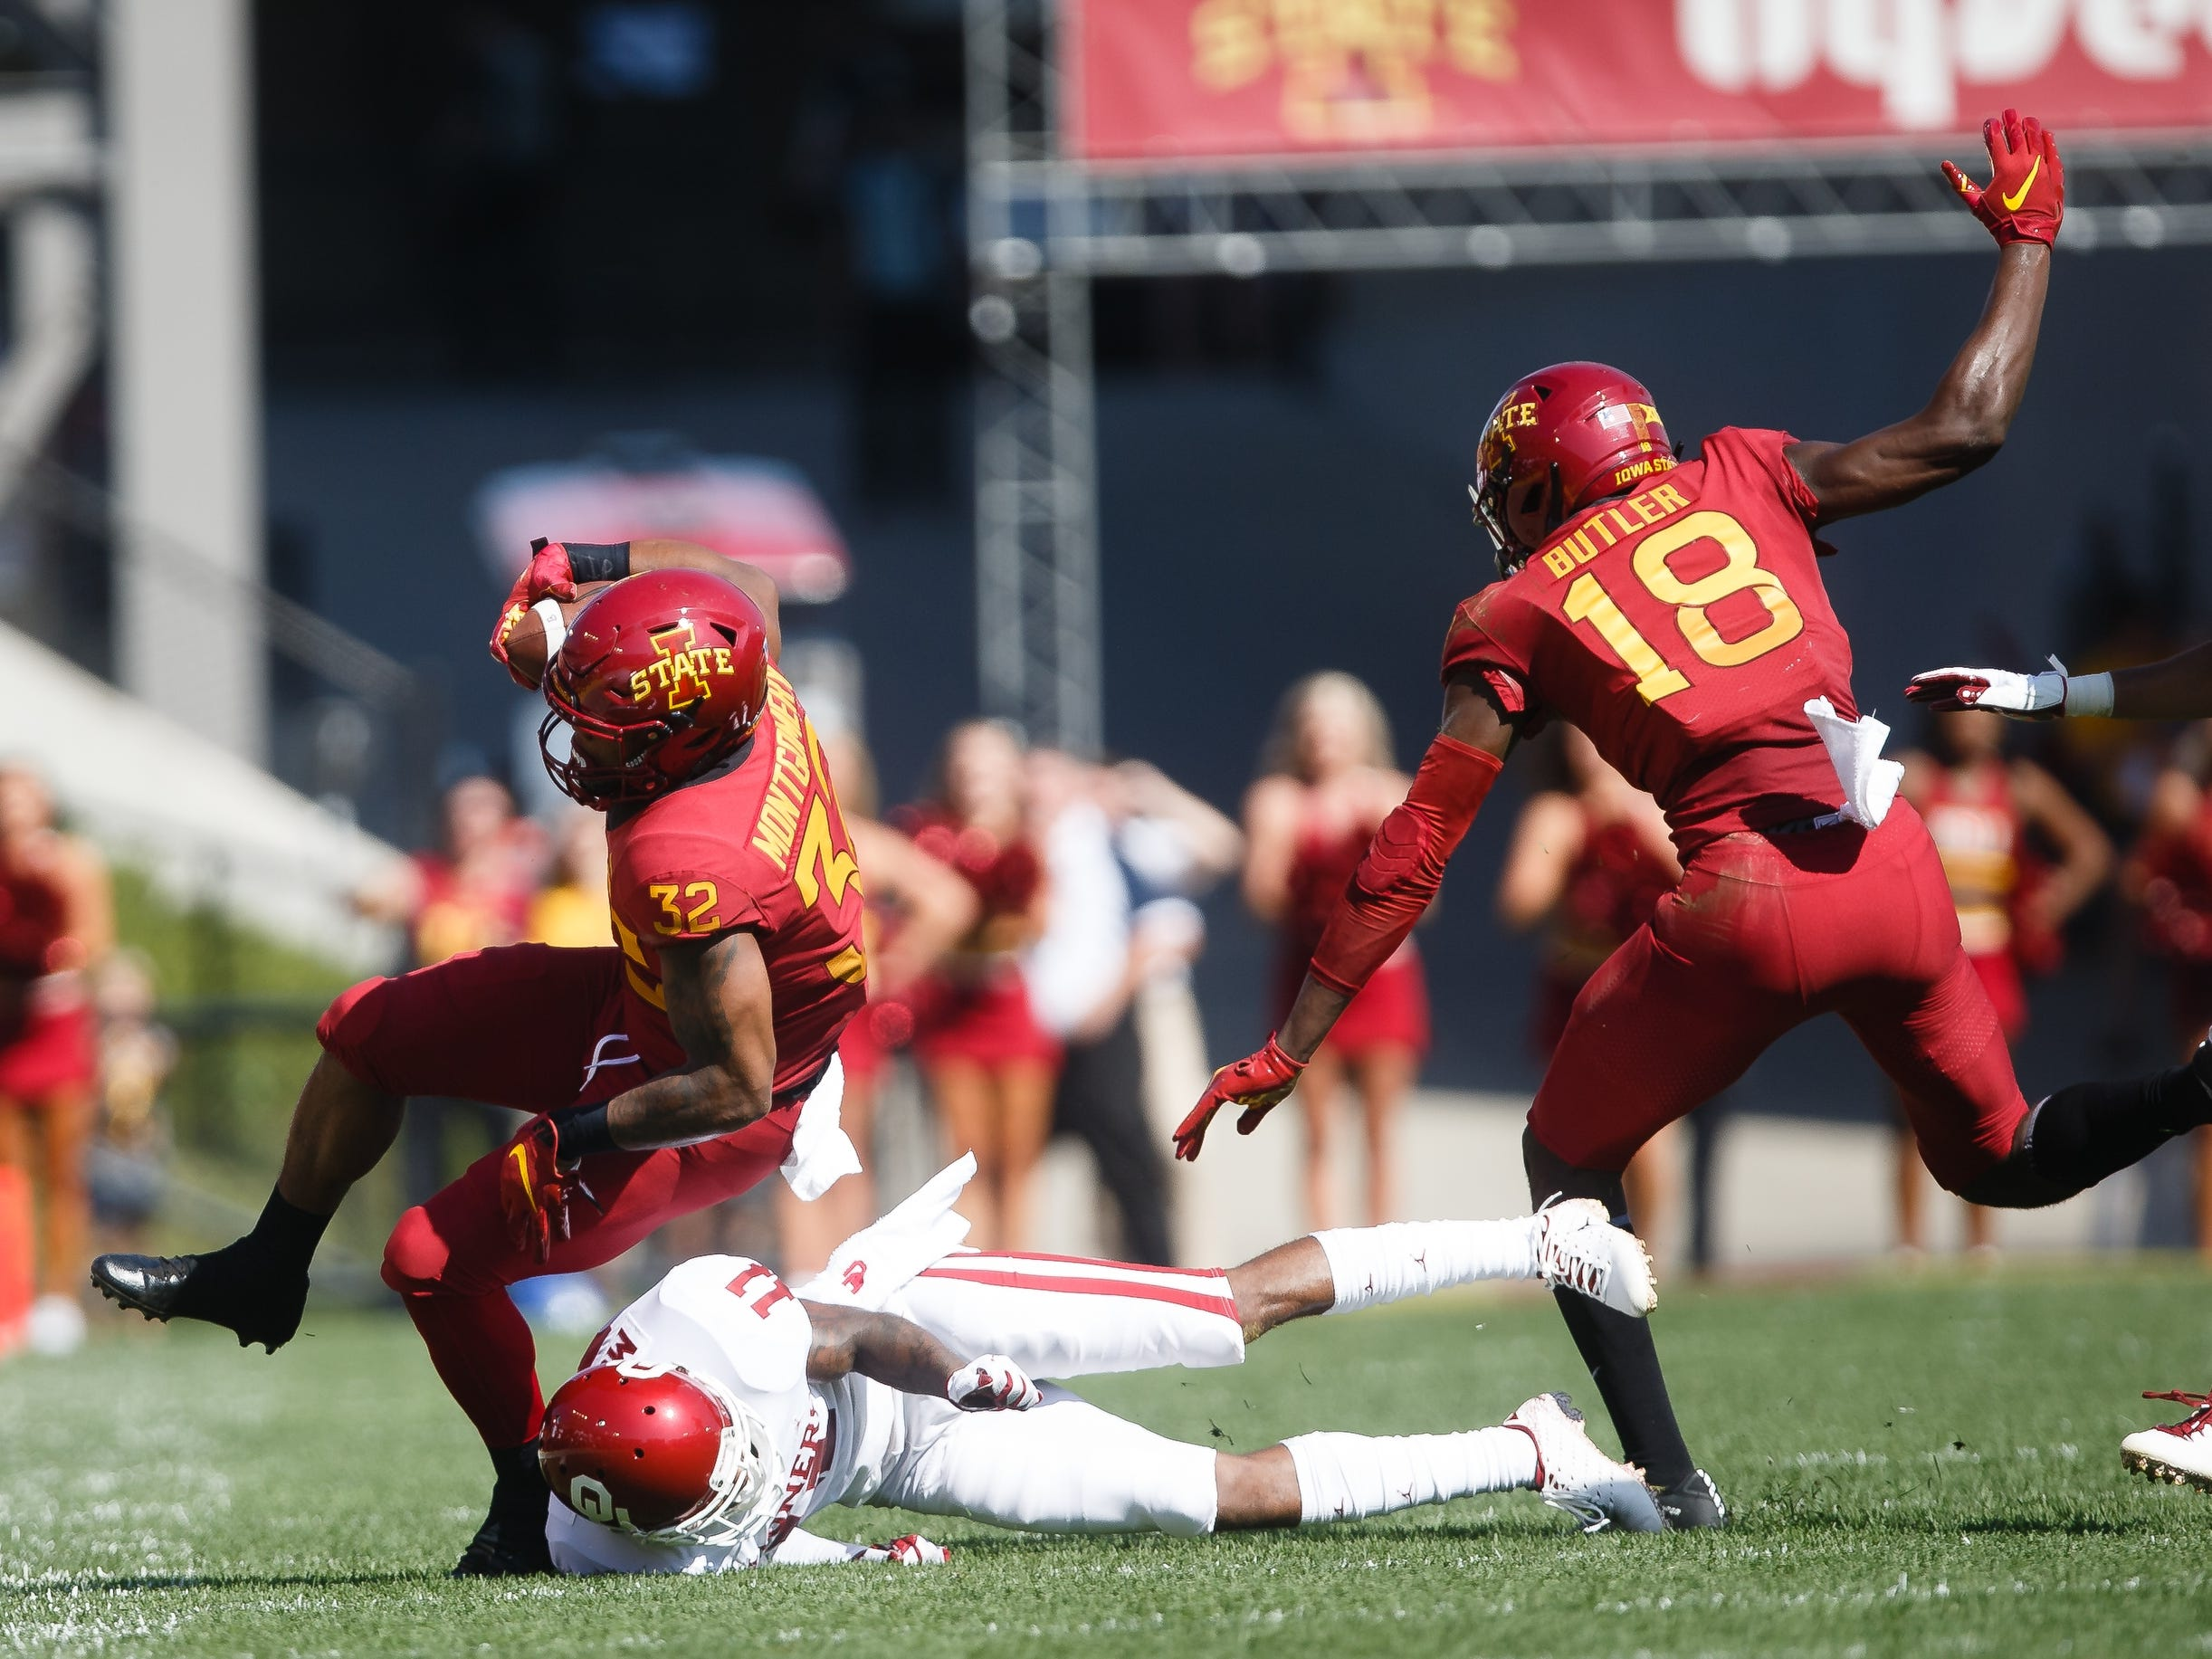 Iowa State's David Montgomery (32) is tackled by Oklahoma's Parnell Motley (11) during their football game at Jack Trice Stadium on Saturday, Sept. 15, 2018 in Ames. Oklahoma would go on to win 37-27.